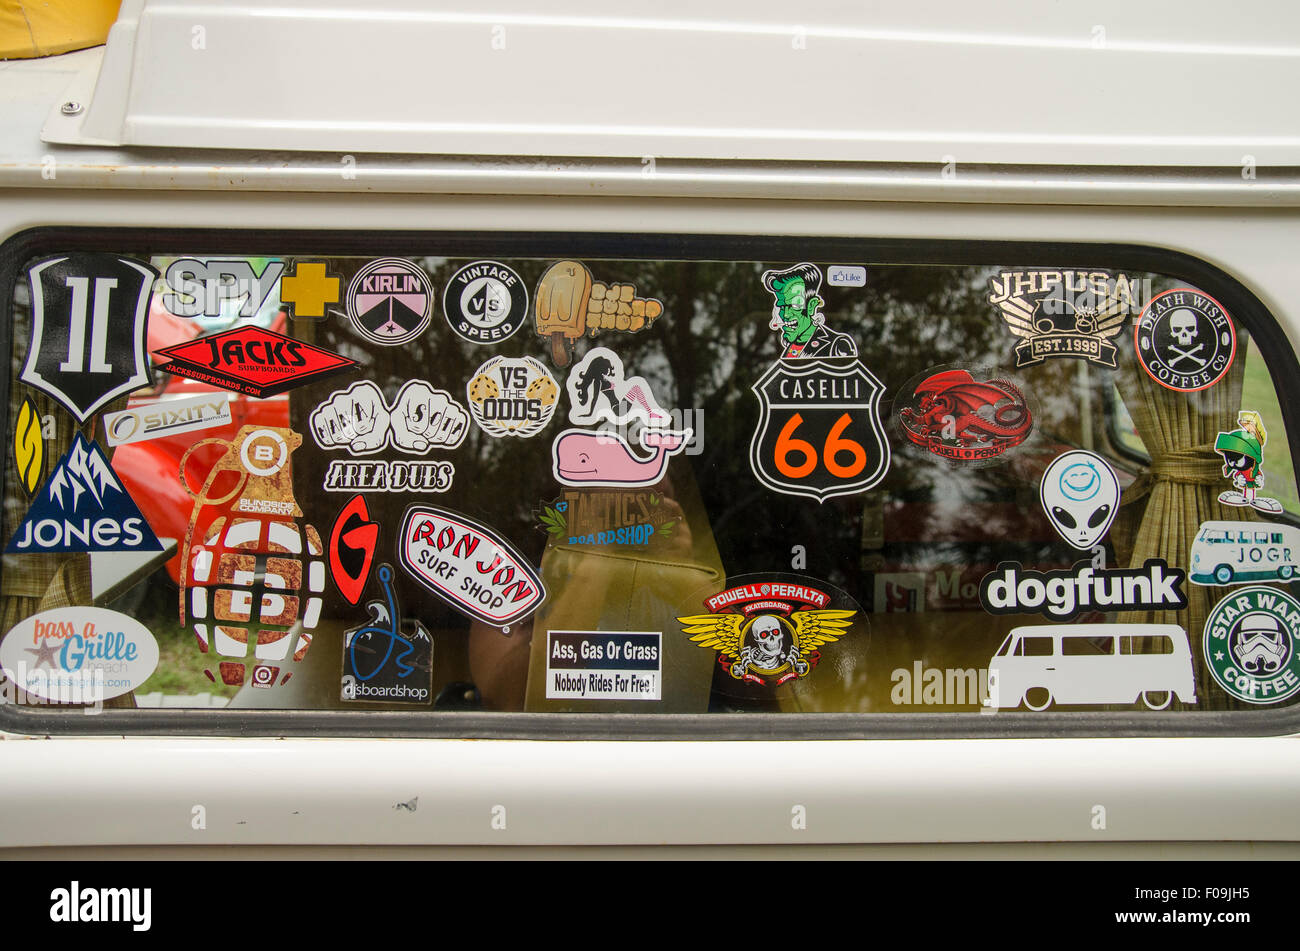 Sticker covered window of Volkswagen Bus at VW's over the Skyway car show. - Stock Image